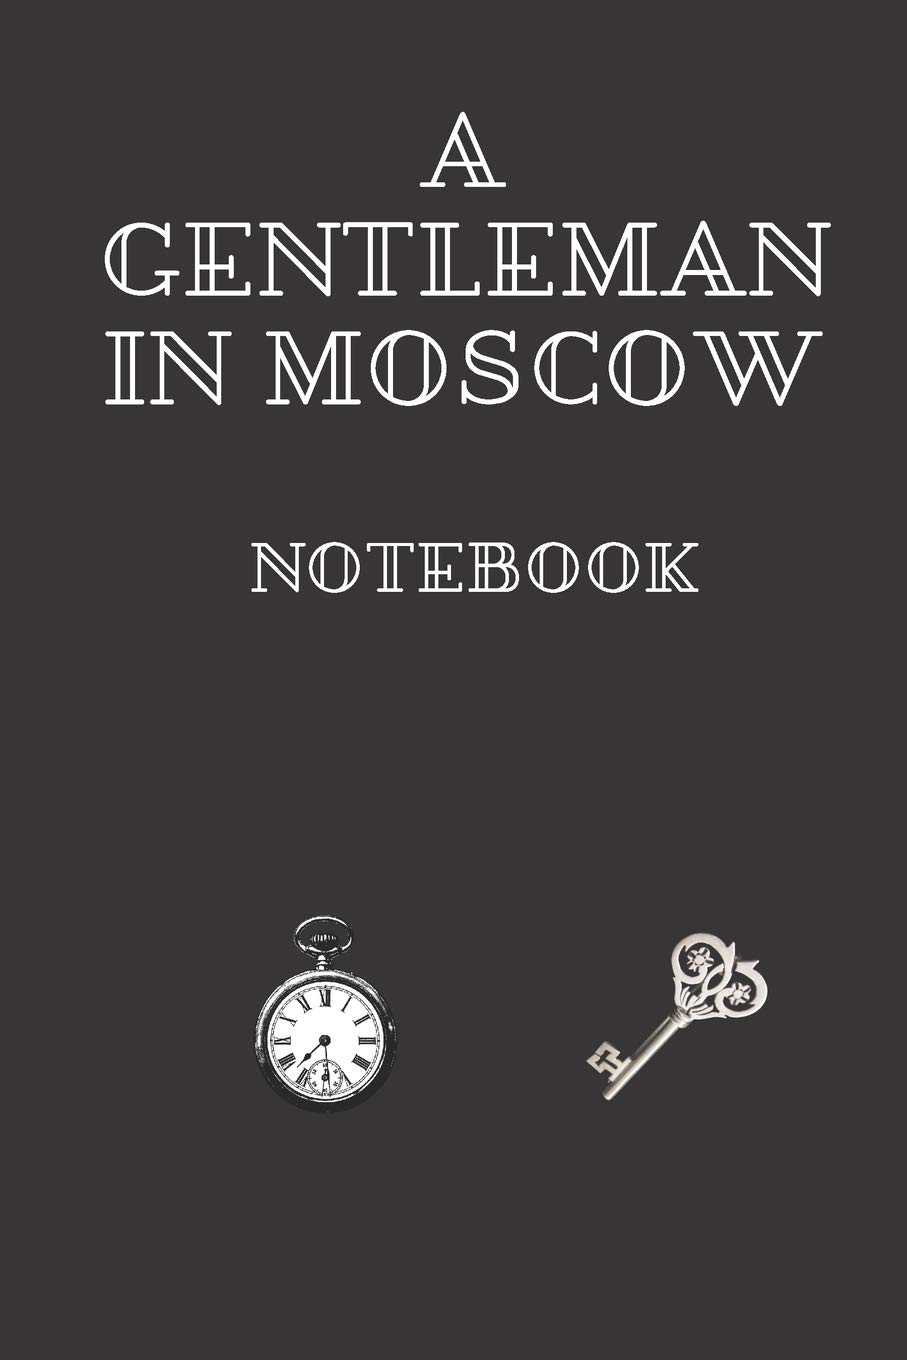 Notebook Of A Gentleman in Moscow: A Novel By Amor Towles